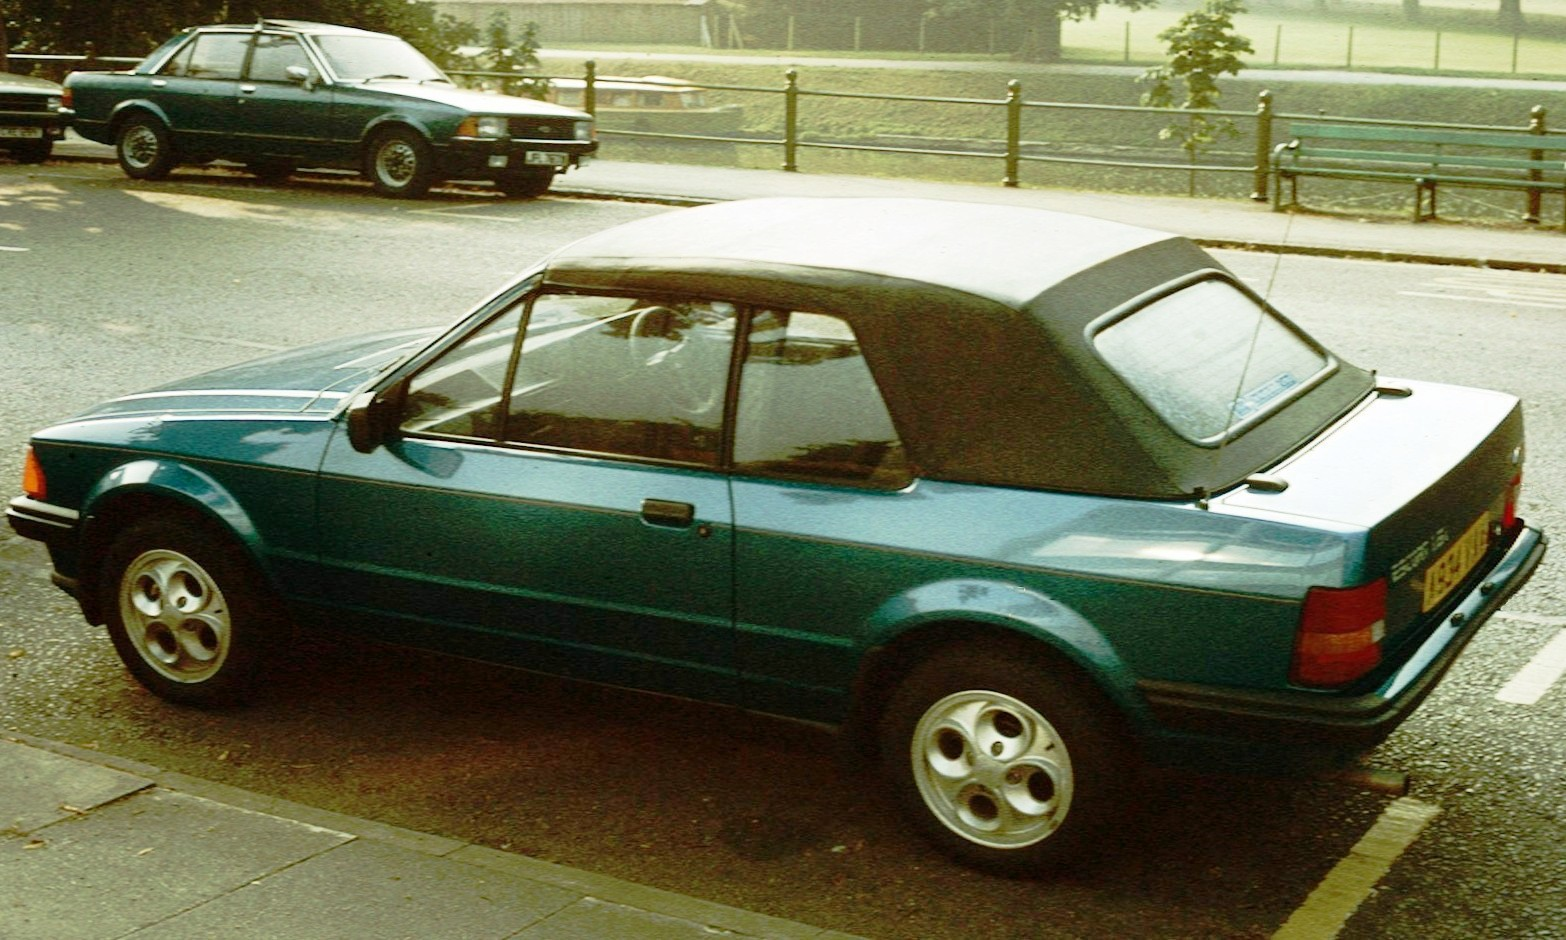 file ford escort 4 cabriolet cambridge jpg wikimedia commons rh commons wikimedia org